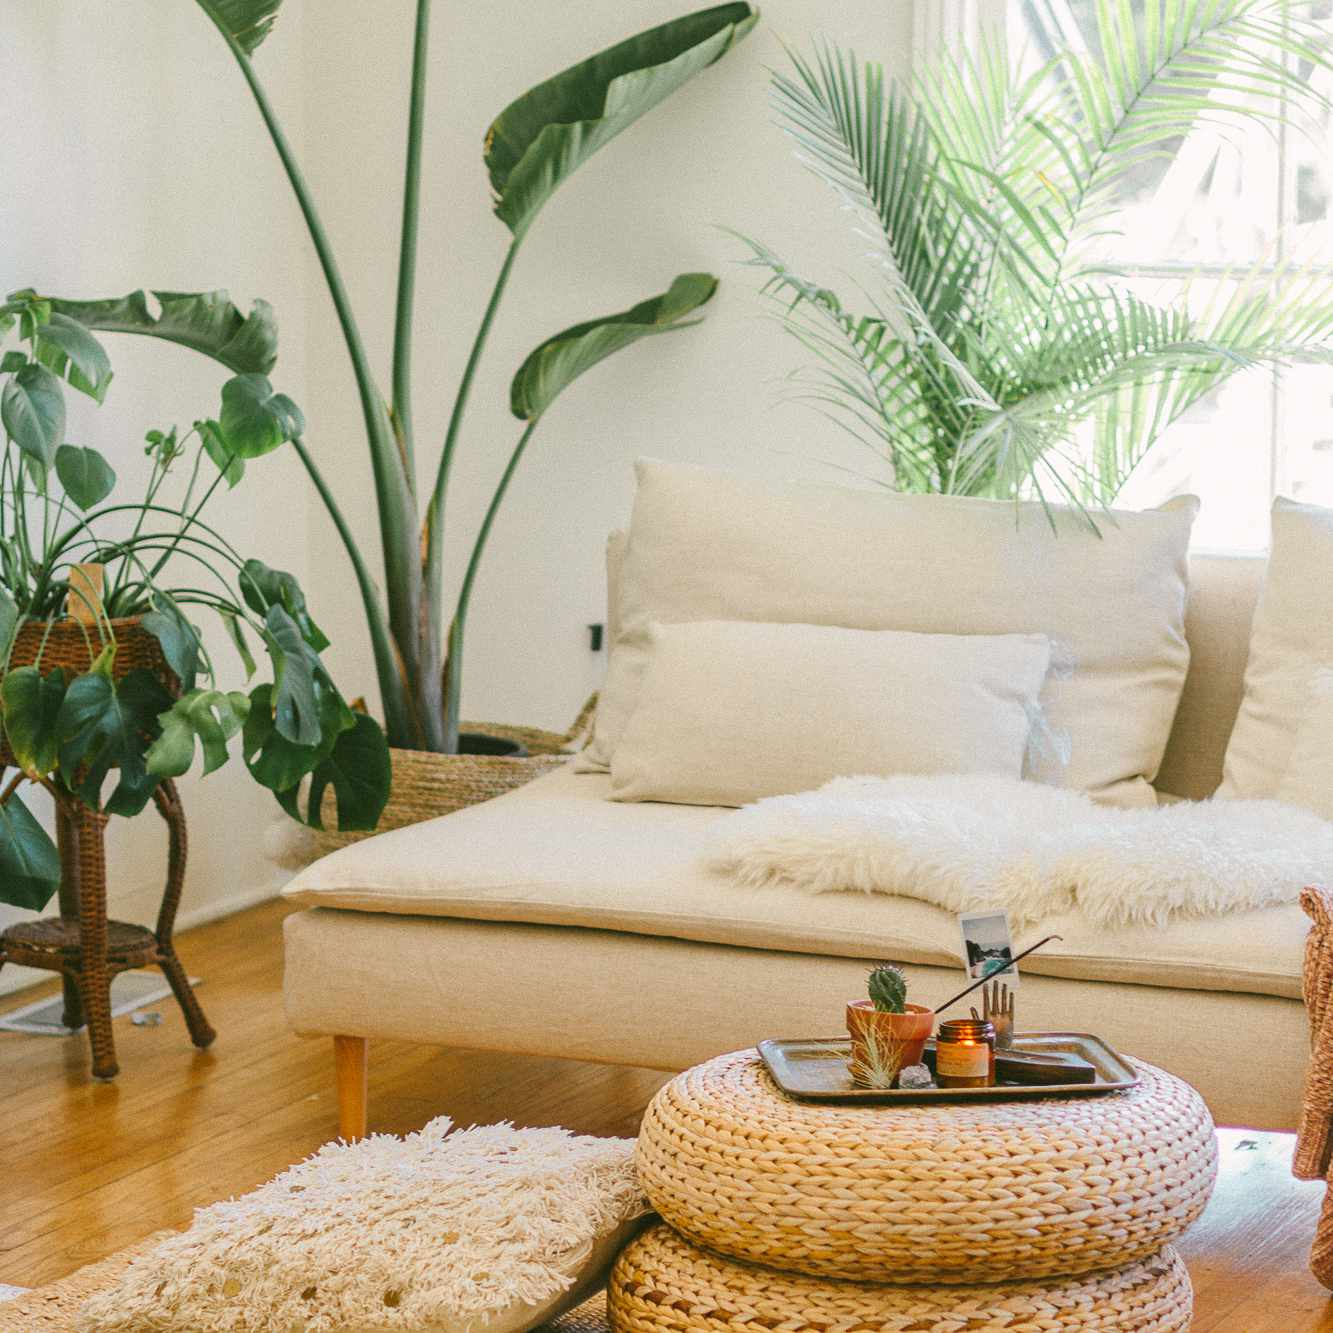 Chic boho living room with low furniture and floor pillows